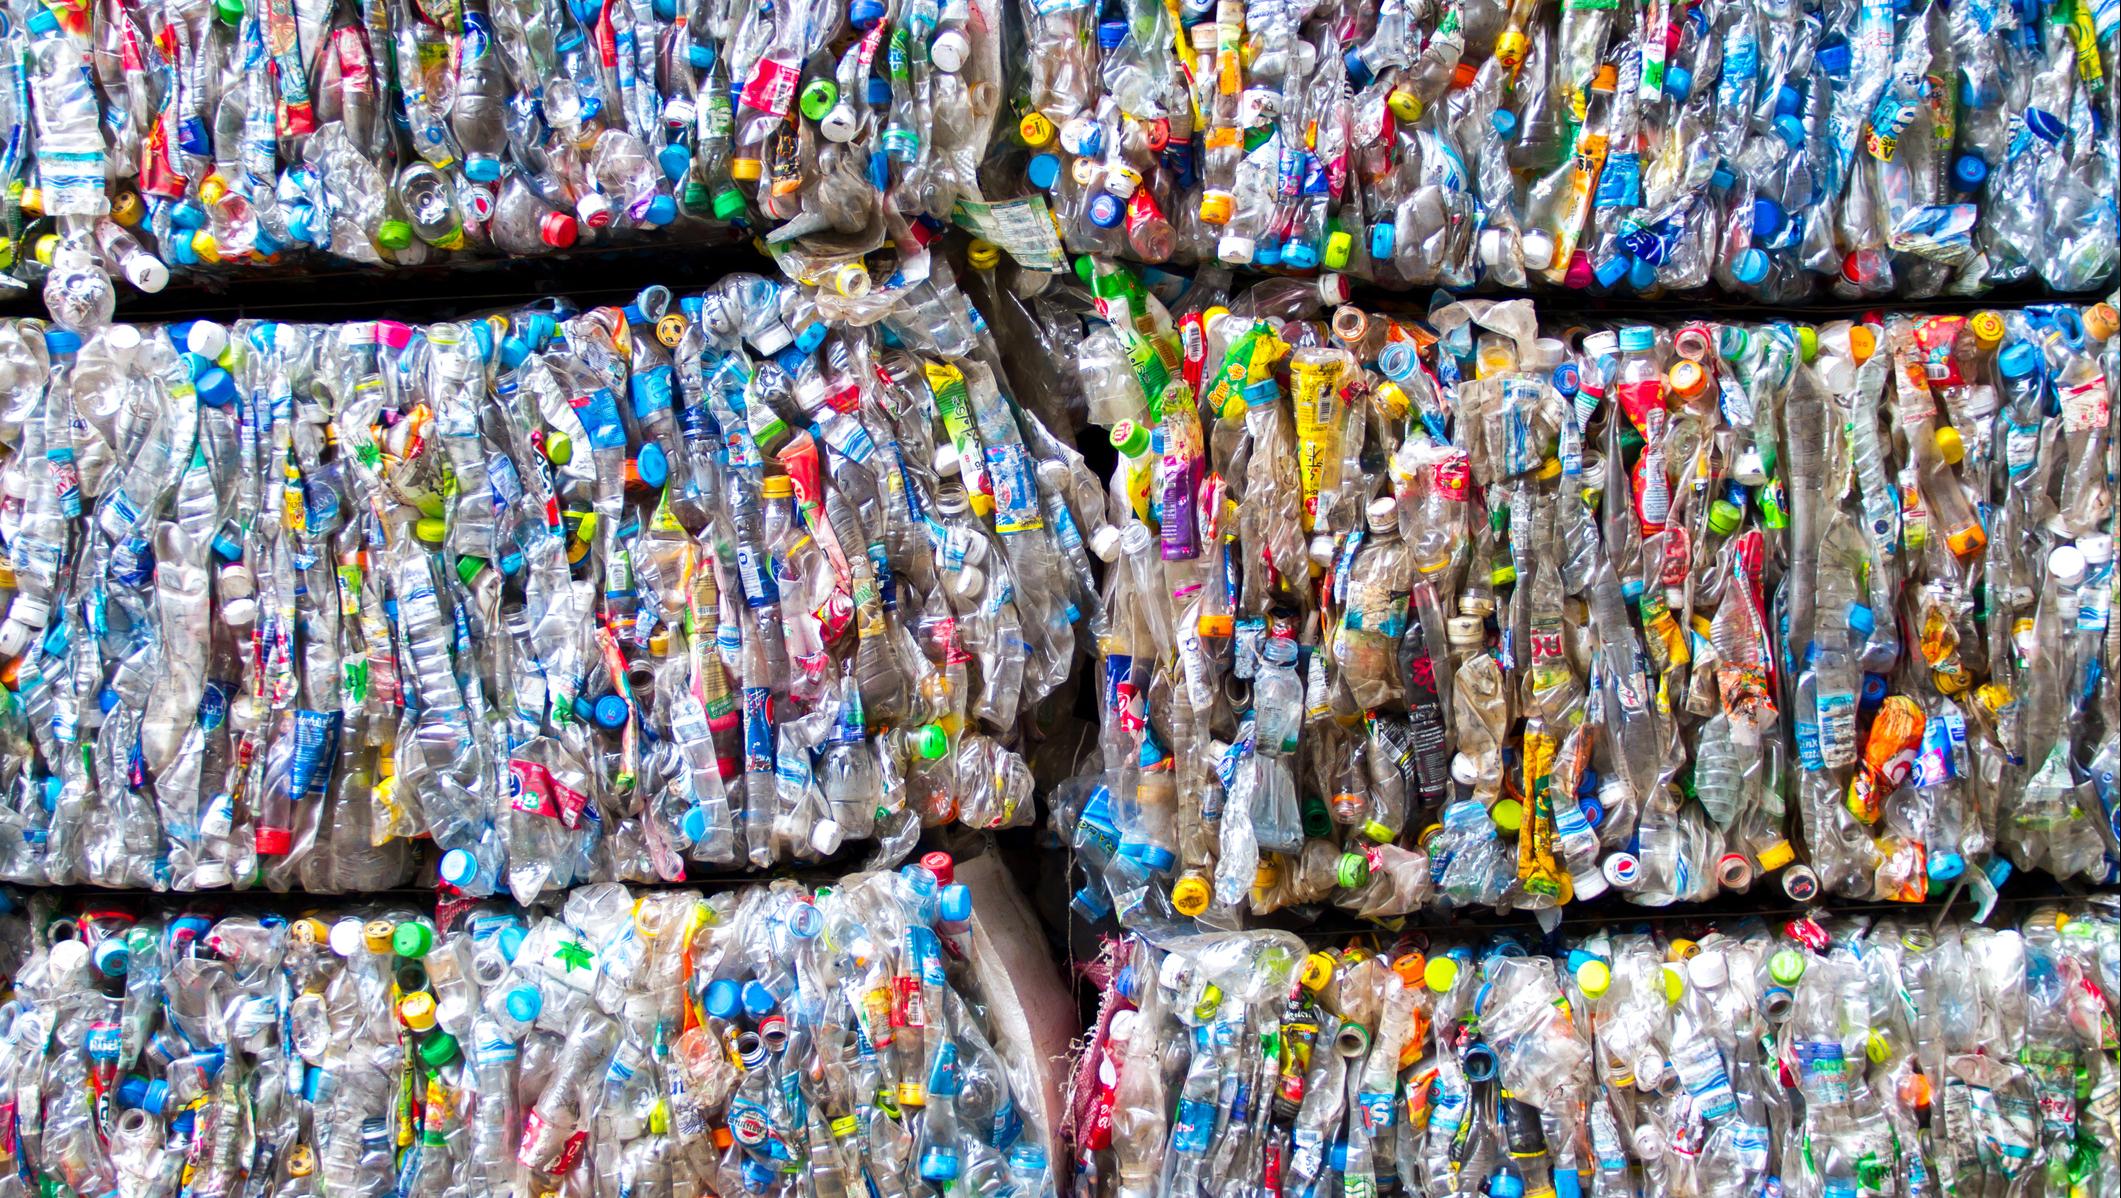 Blocks of plastic ready to be recycled.